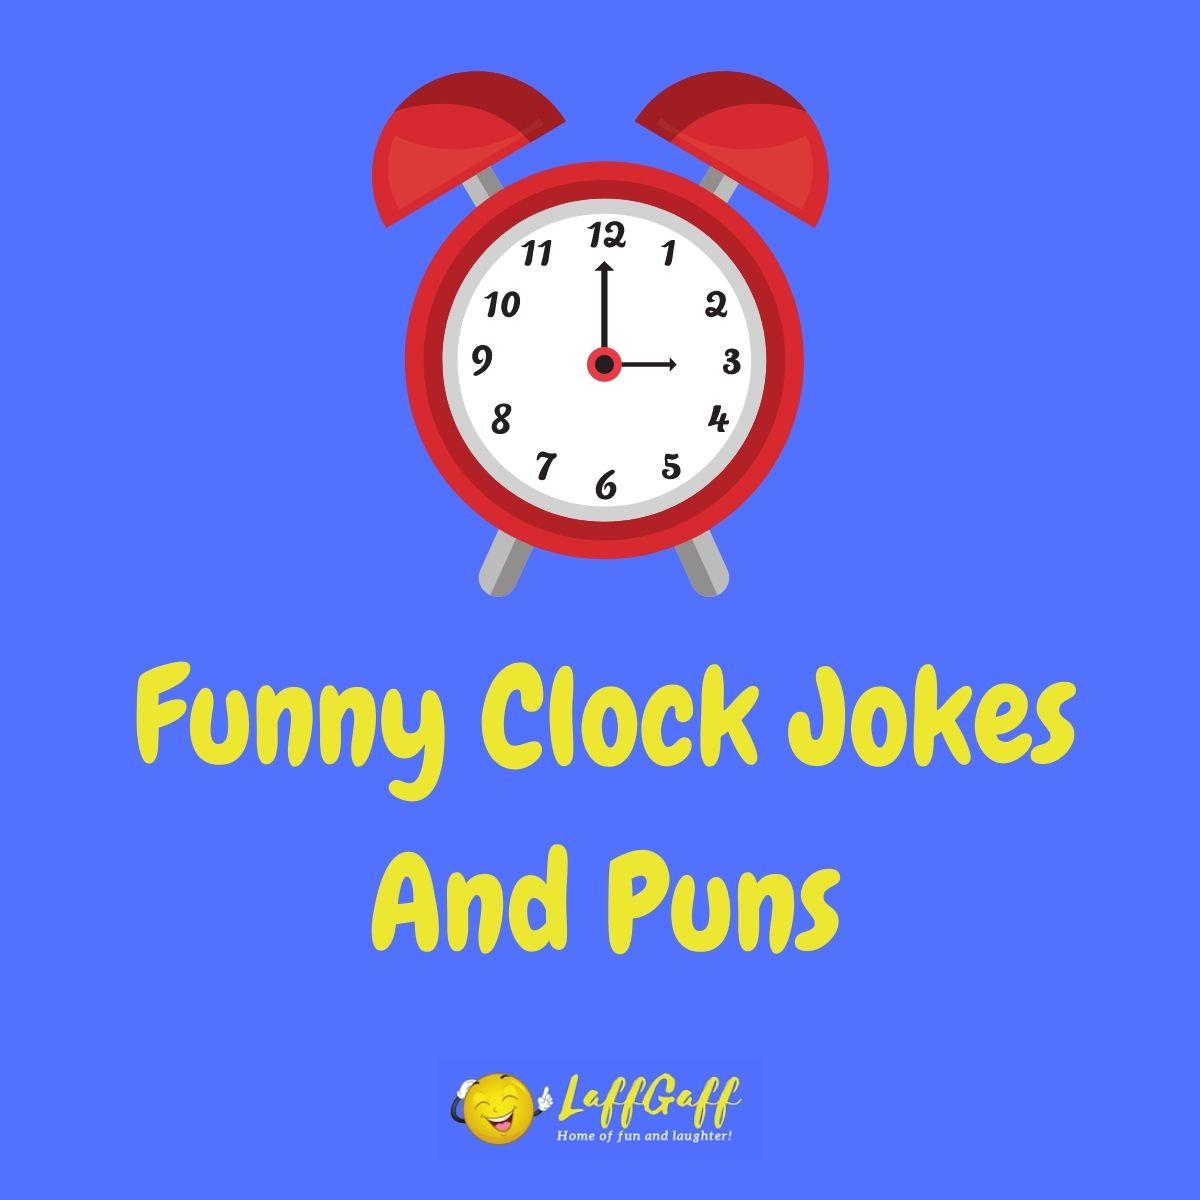 Featured image for a page of funny clock jokes and puns.